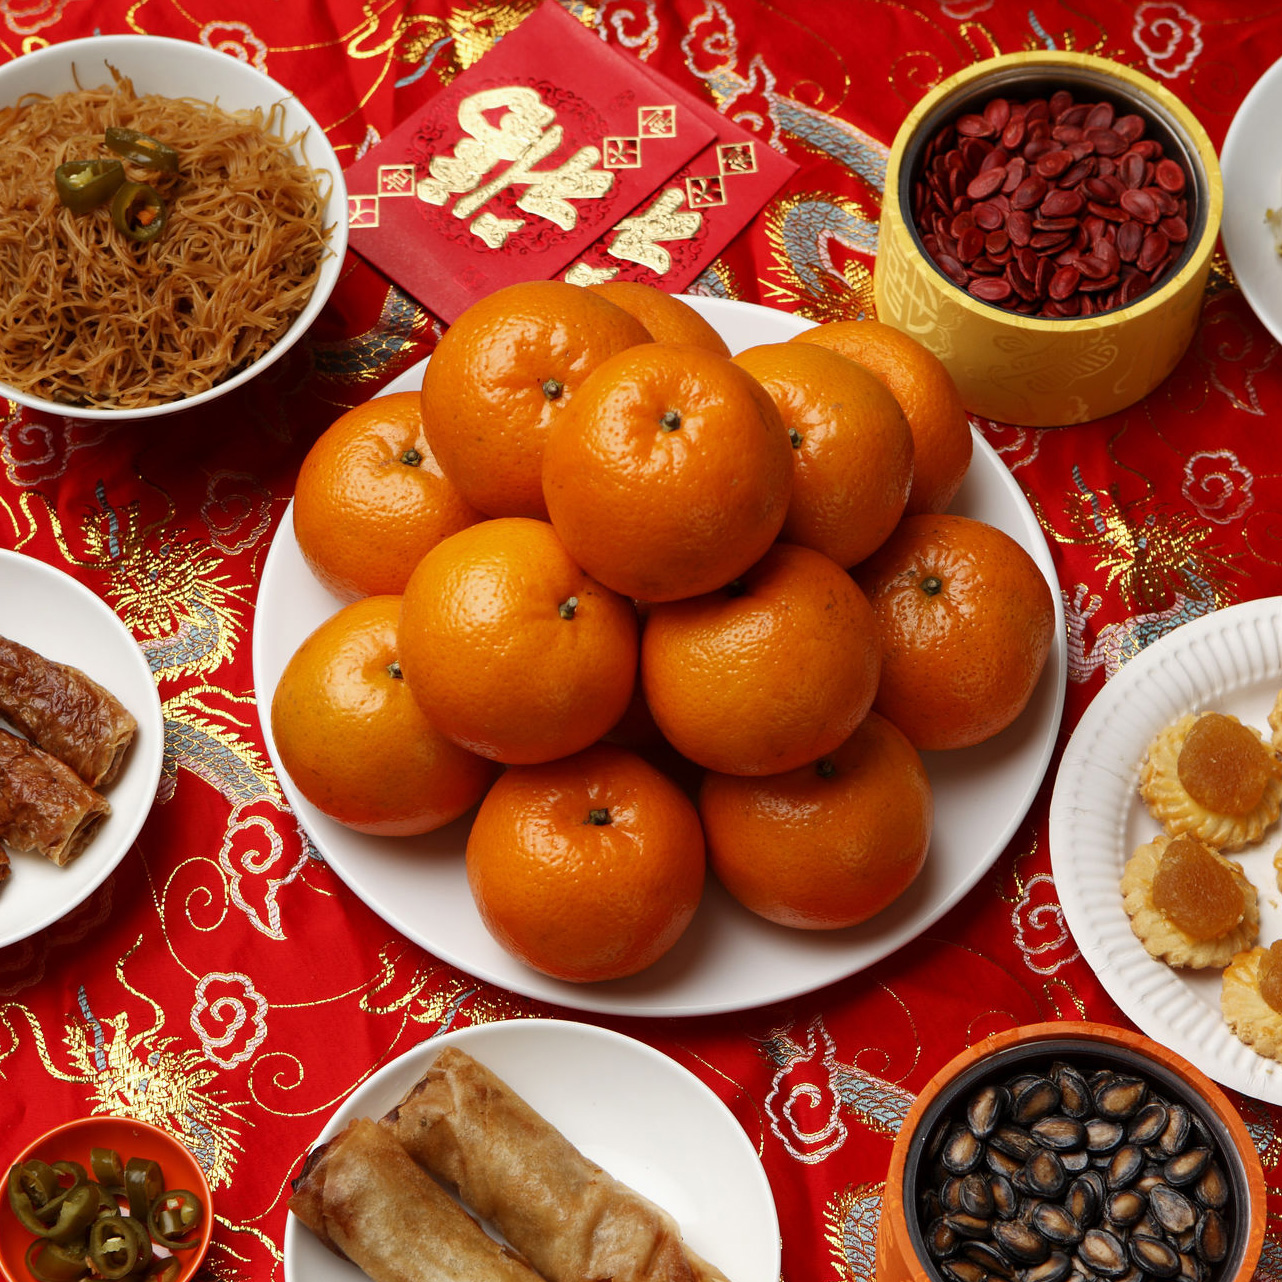 HUAT AH: Here's Why You Should Eat These Super Auspicious CNY Foods